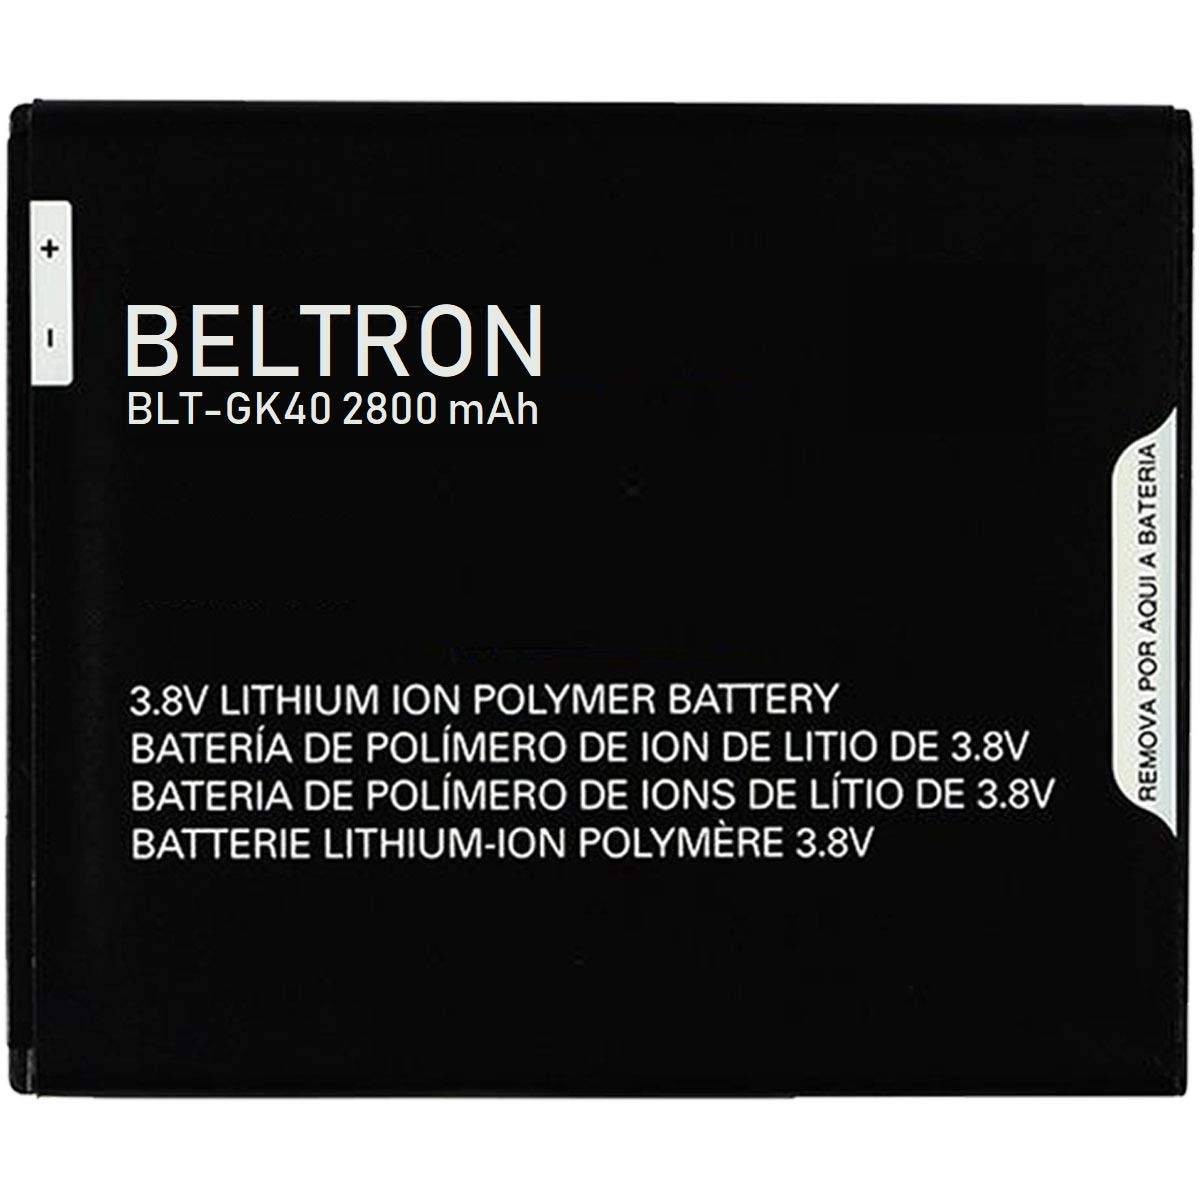 New 2800 mAh BELTRON Replacement Battery for Motorola G4 Play XT1607 - GK40 by BELTRON